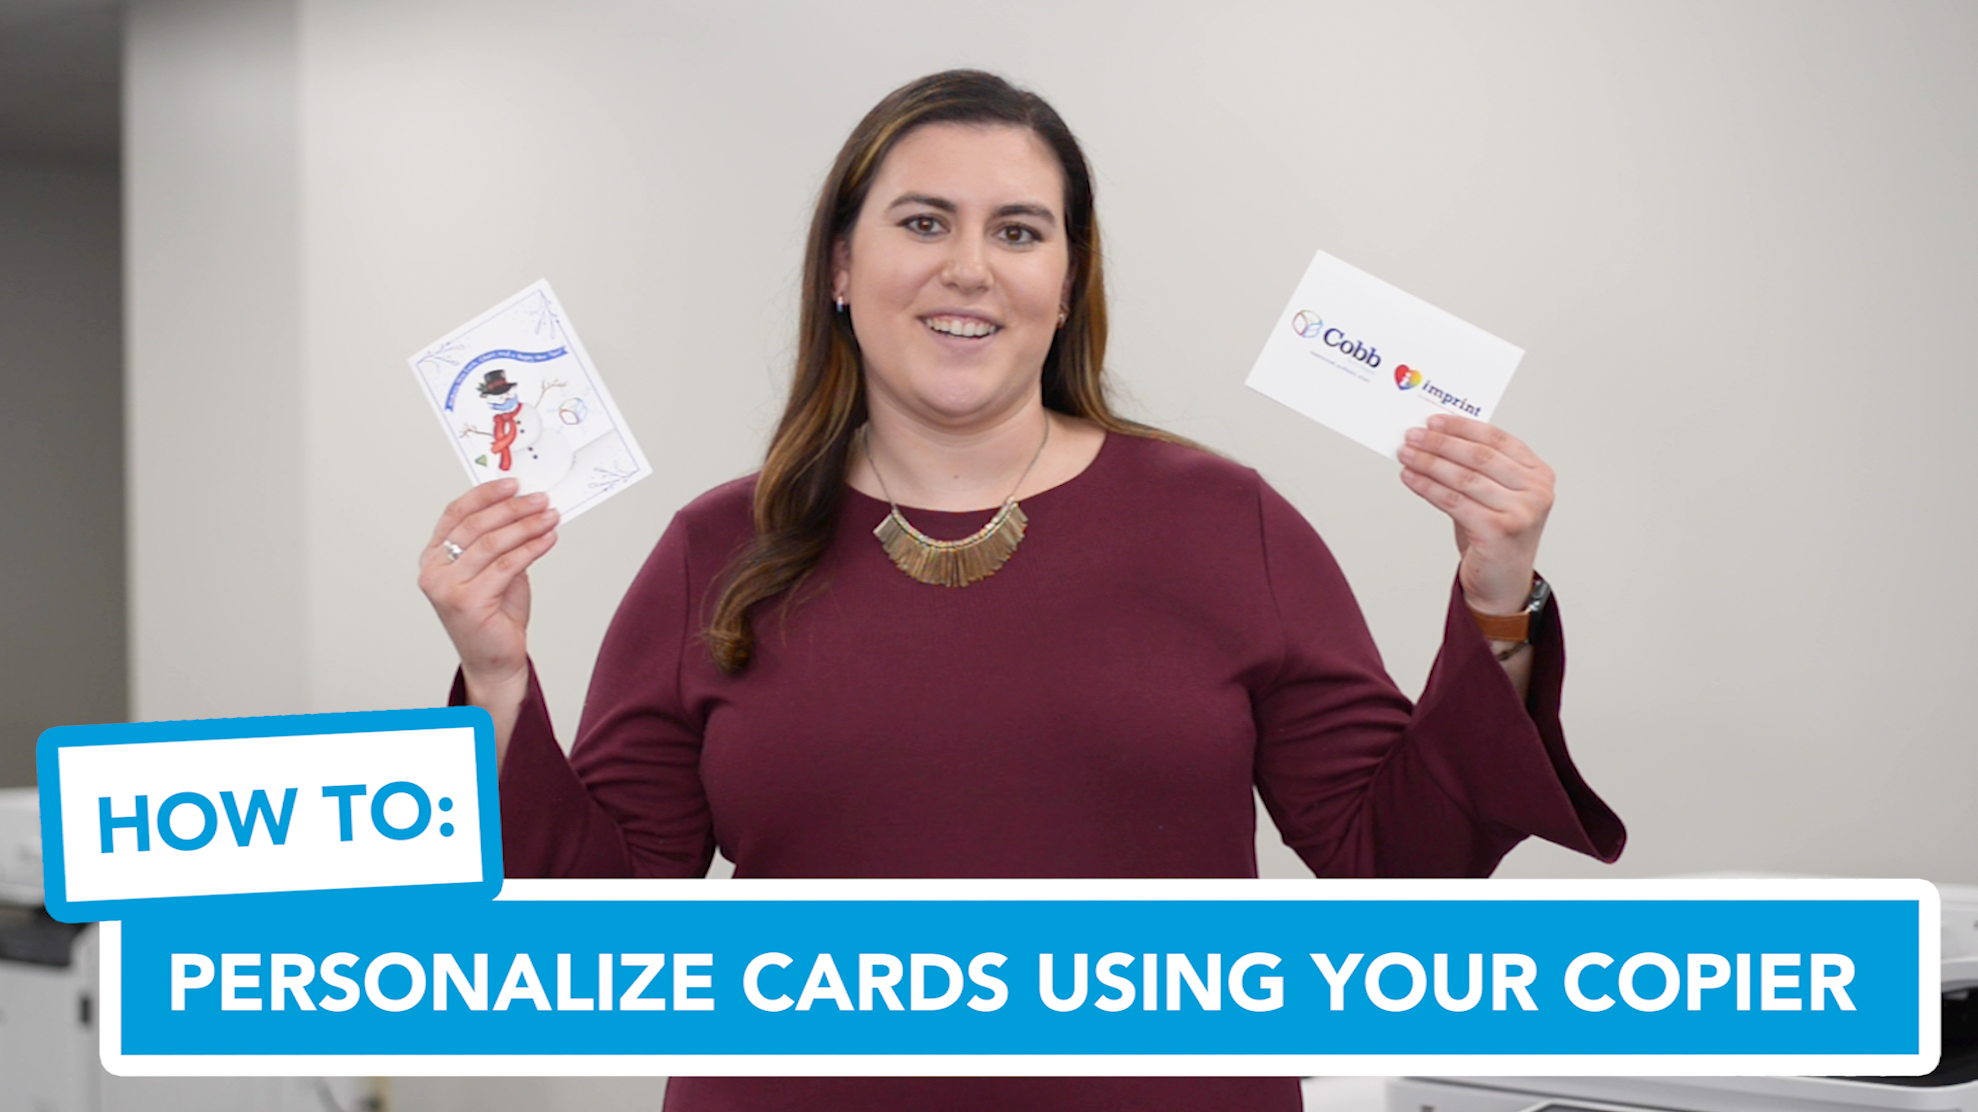 How to Personalize Cards Using Your Copier